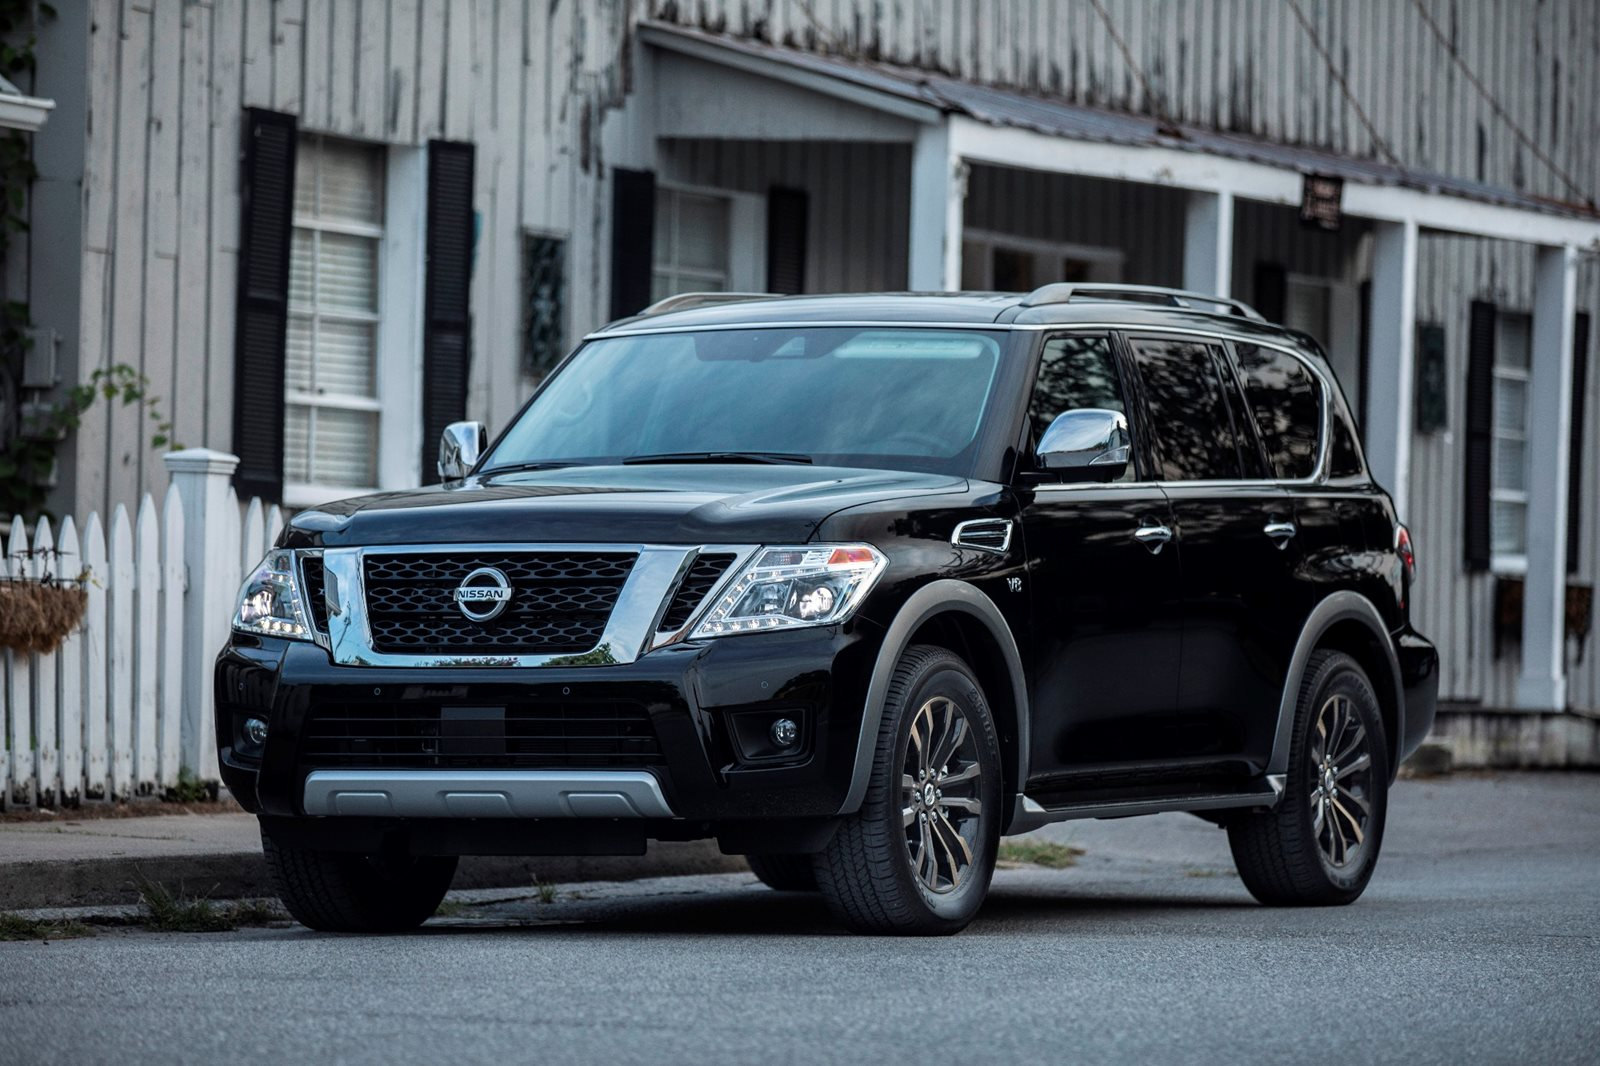 2018 Nissan Armada Review, Trims, Specs and Price | CarBuzz